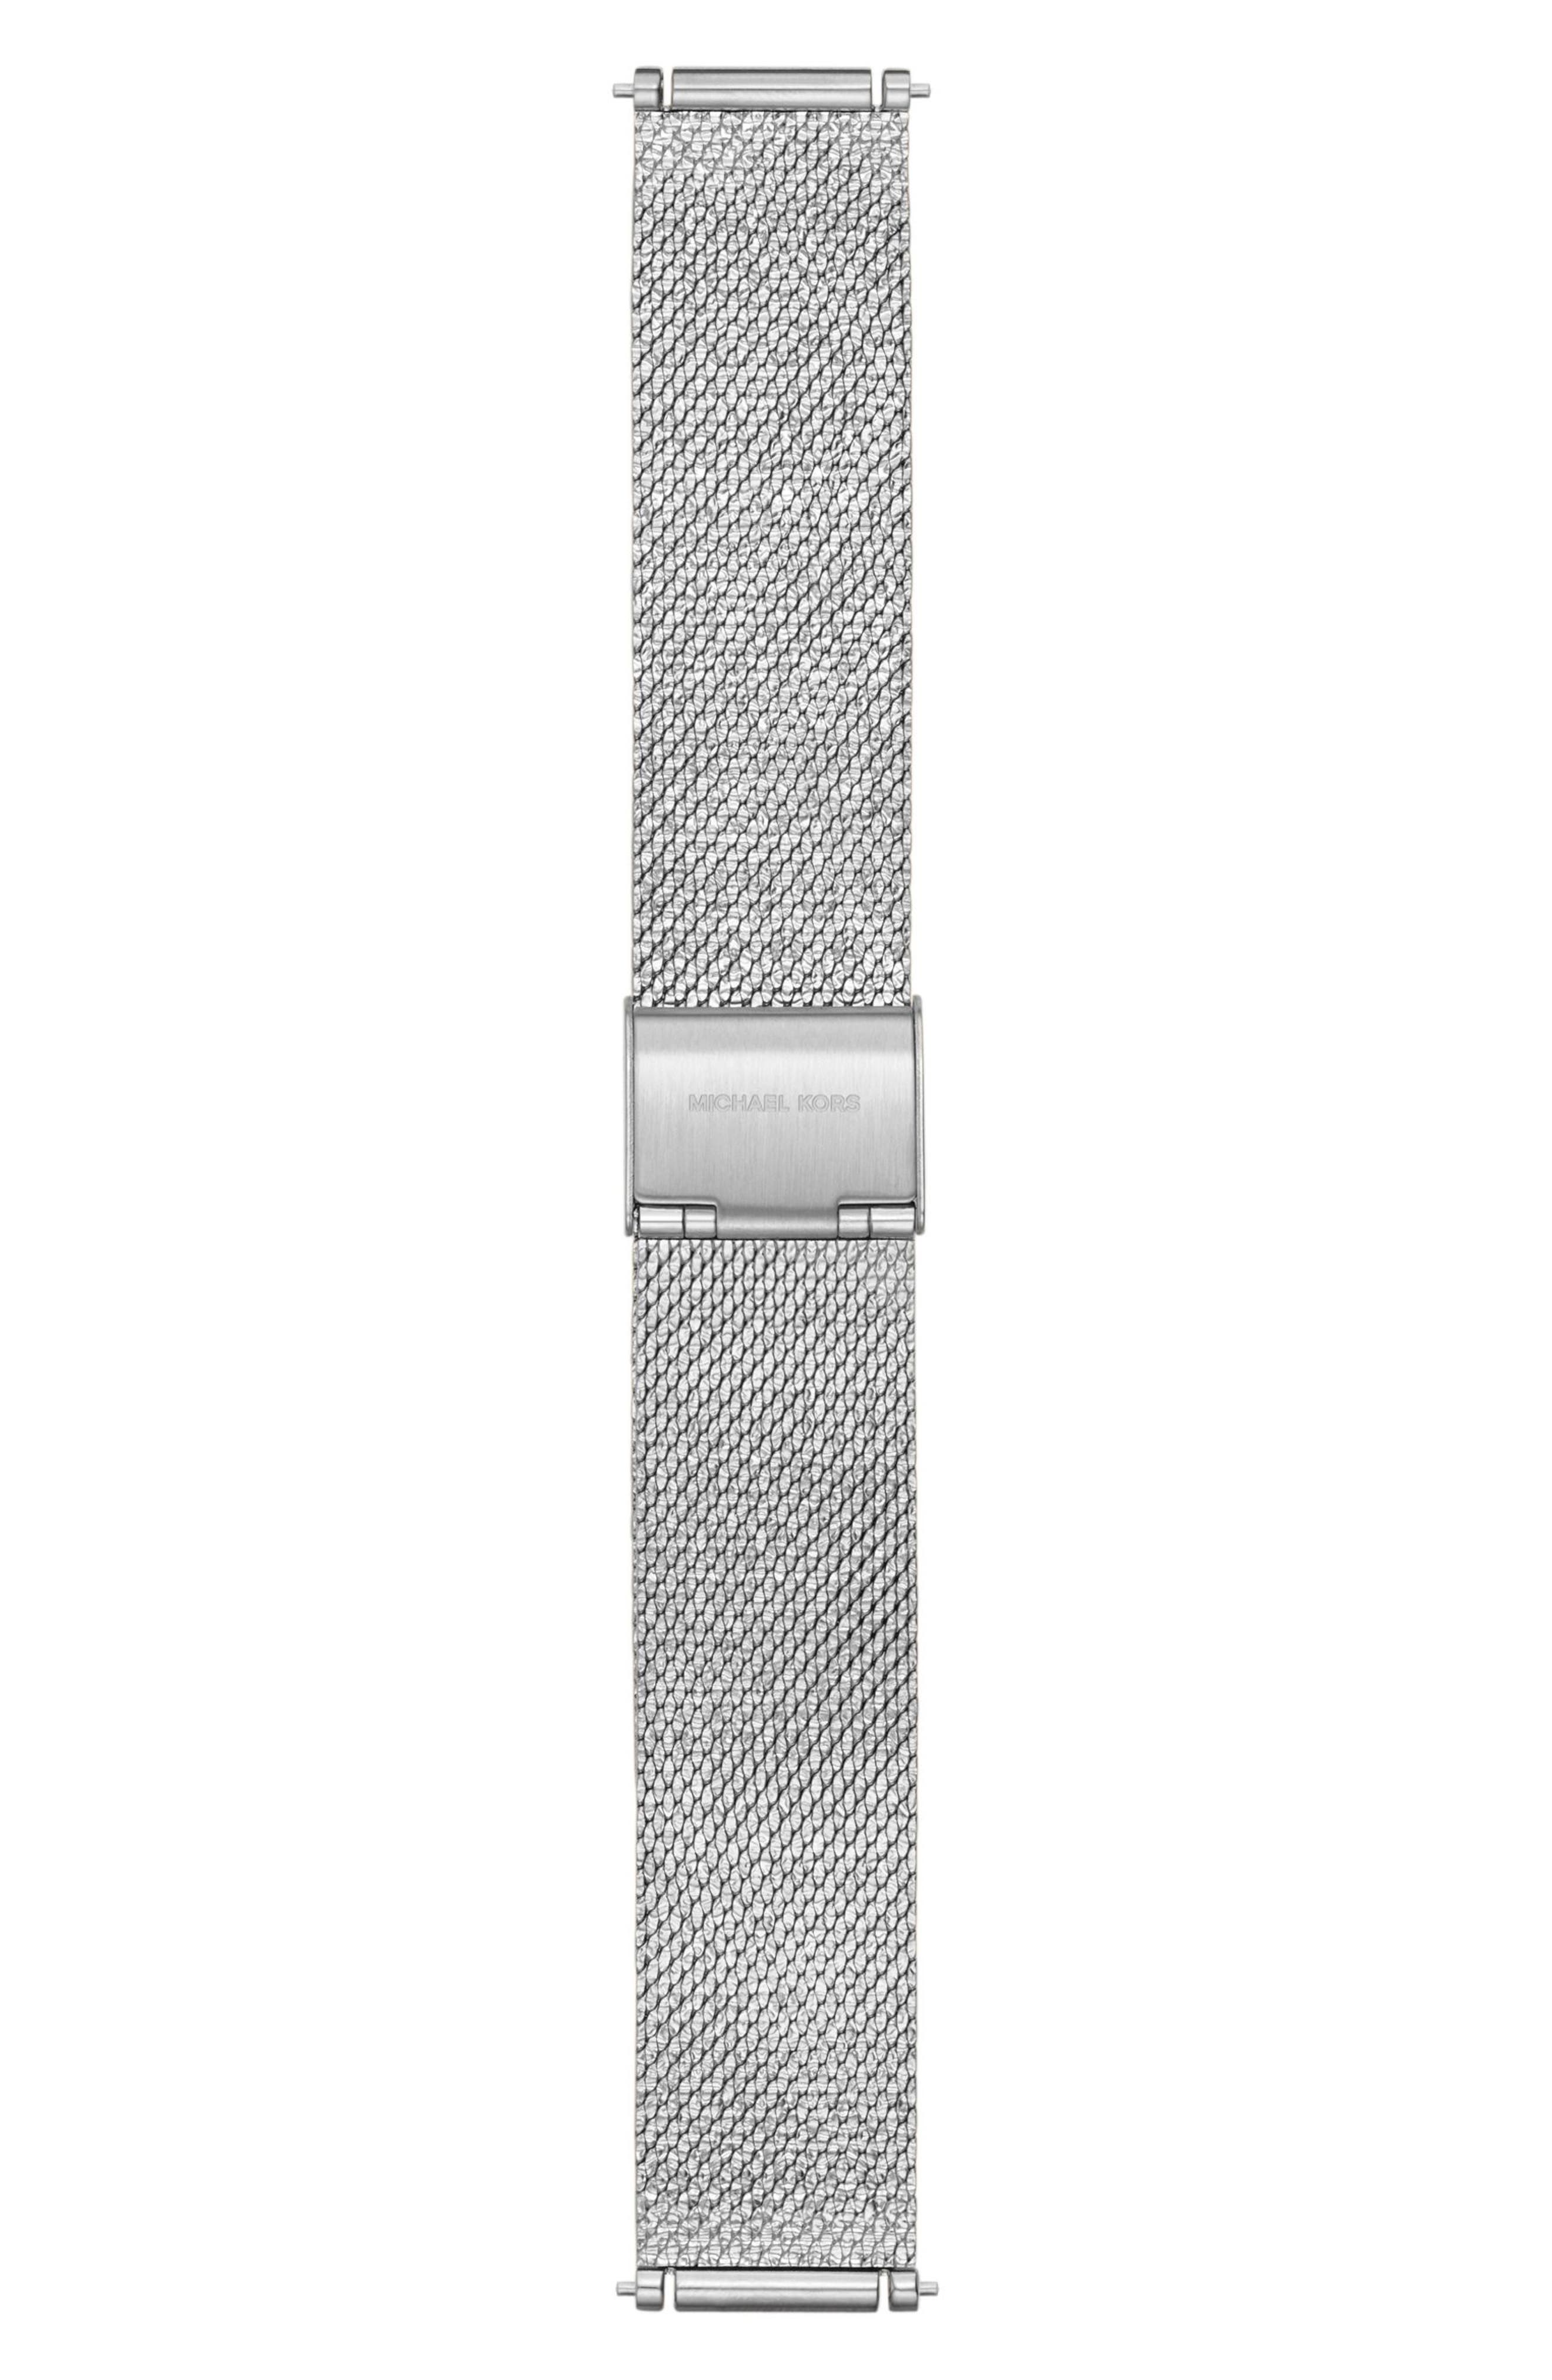 MICHAEL KORS ACCESS Sofie 18Mm Mesh Watch Strap in Silver